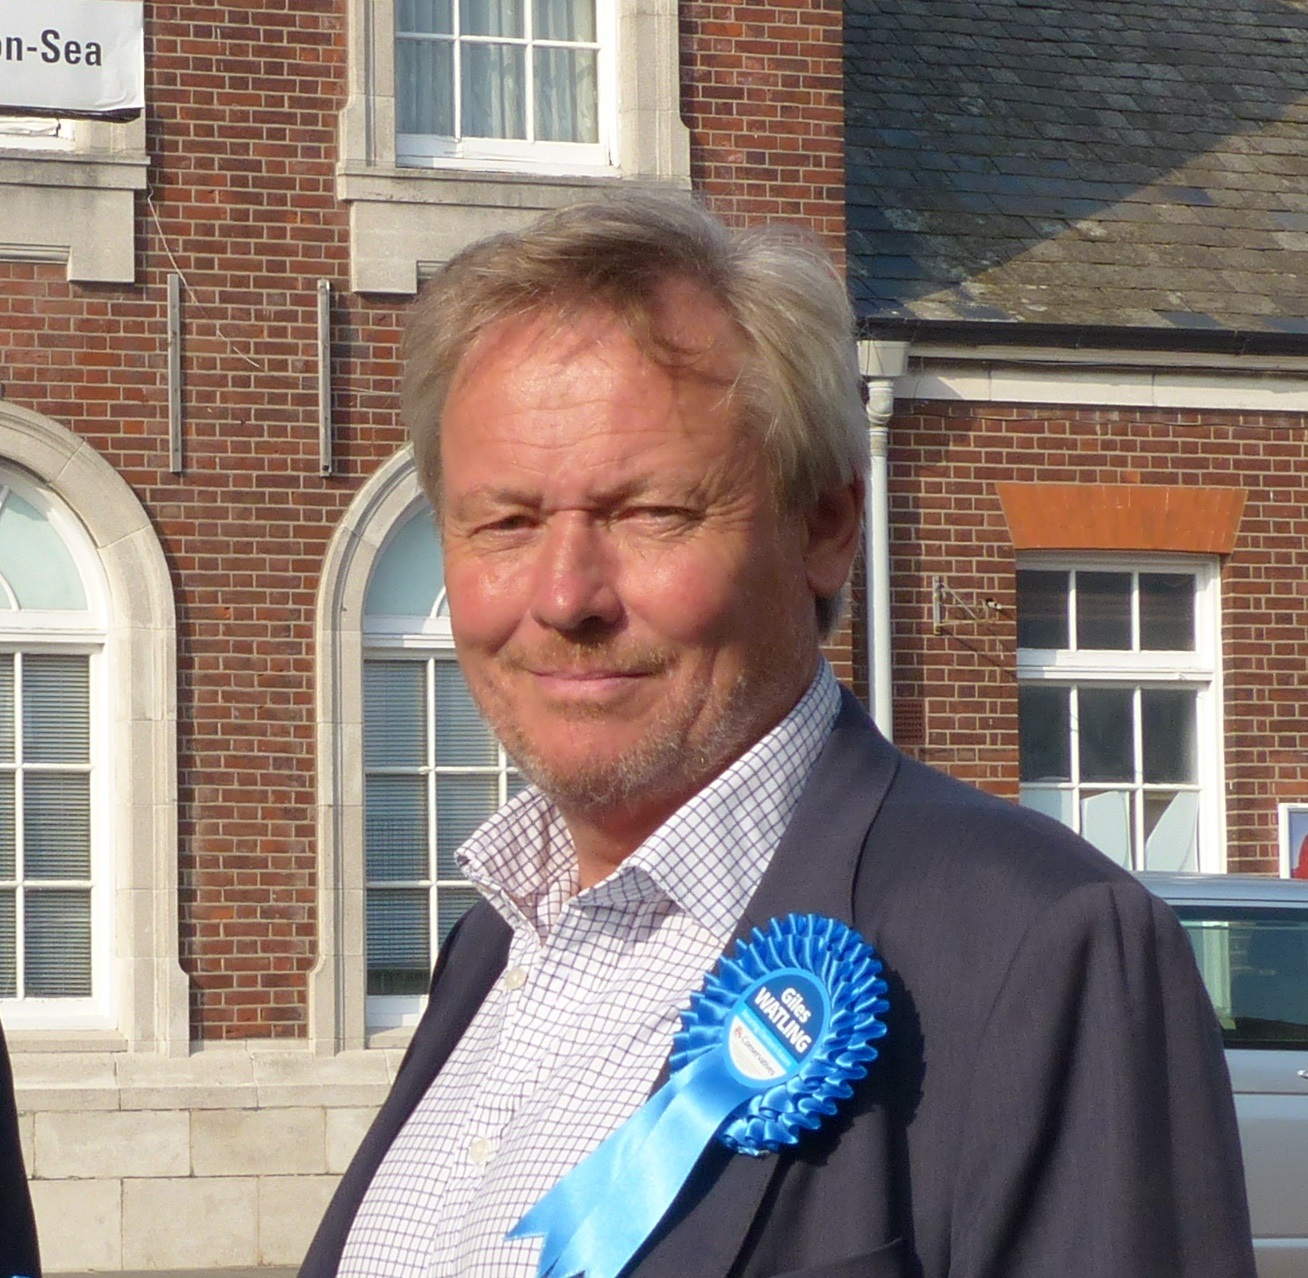 Giles Watling re-selected as Tory candidate for Clacton seat at General Election